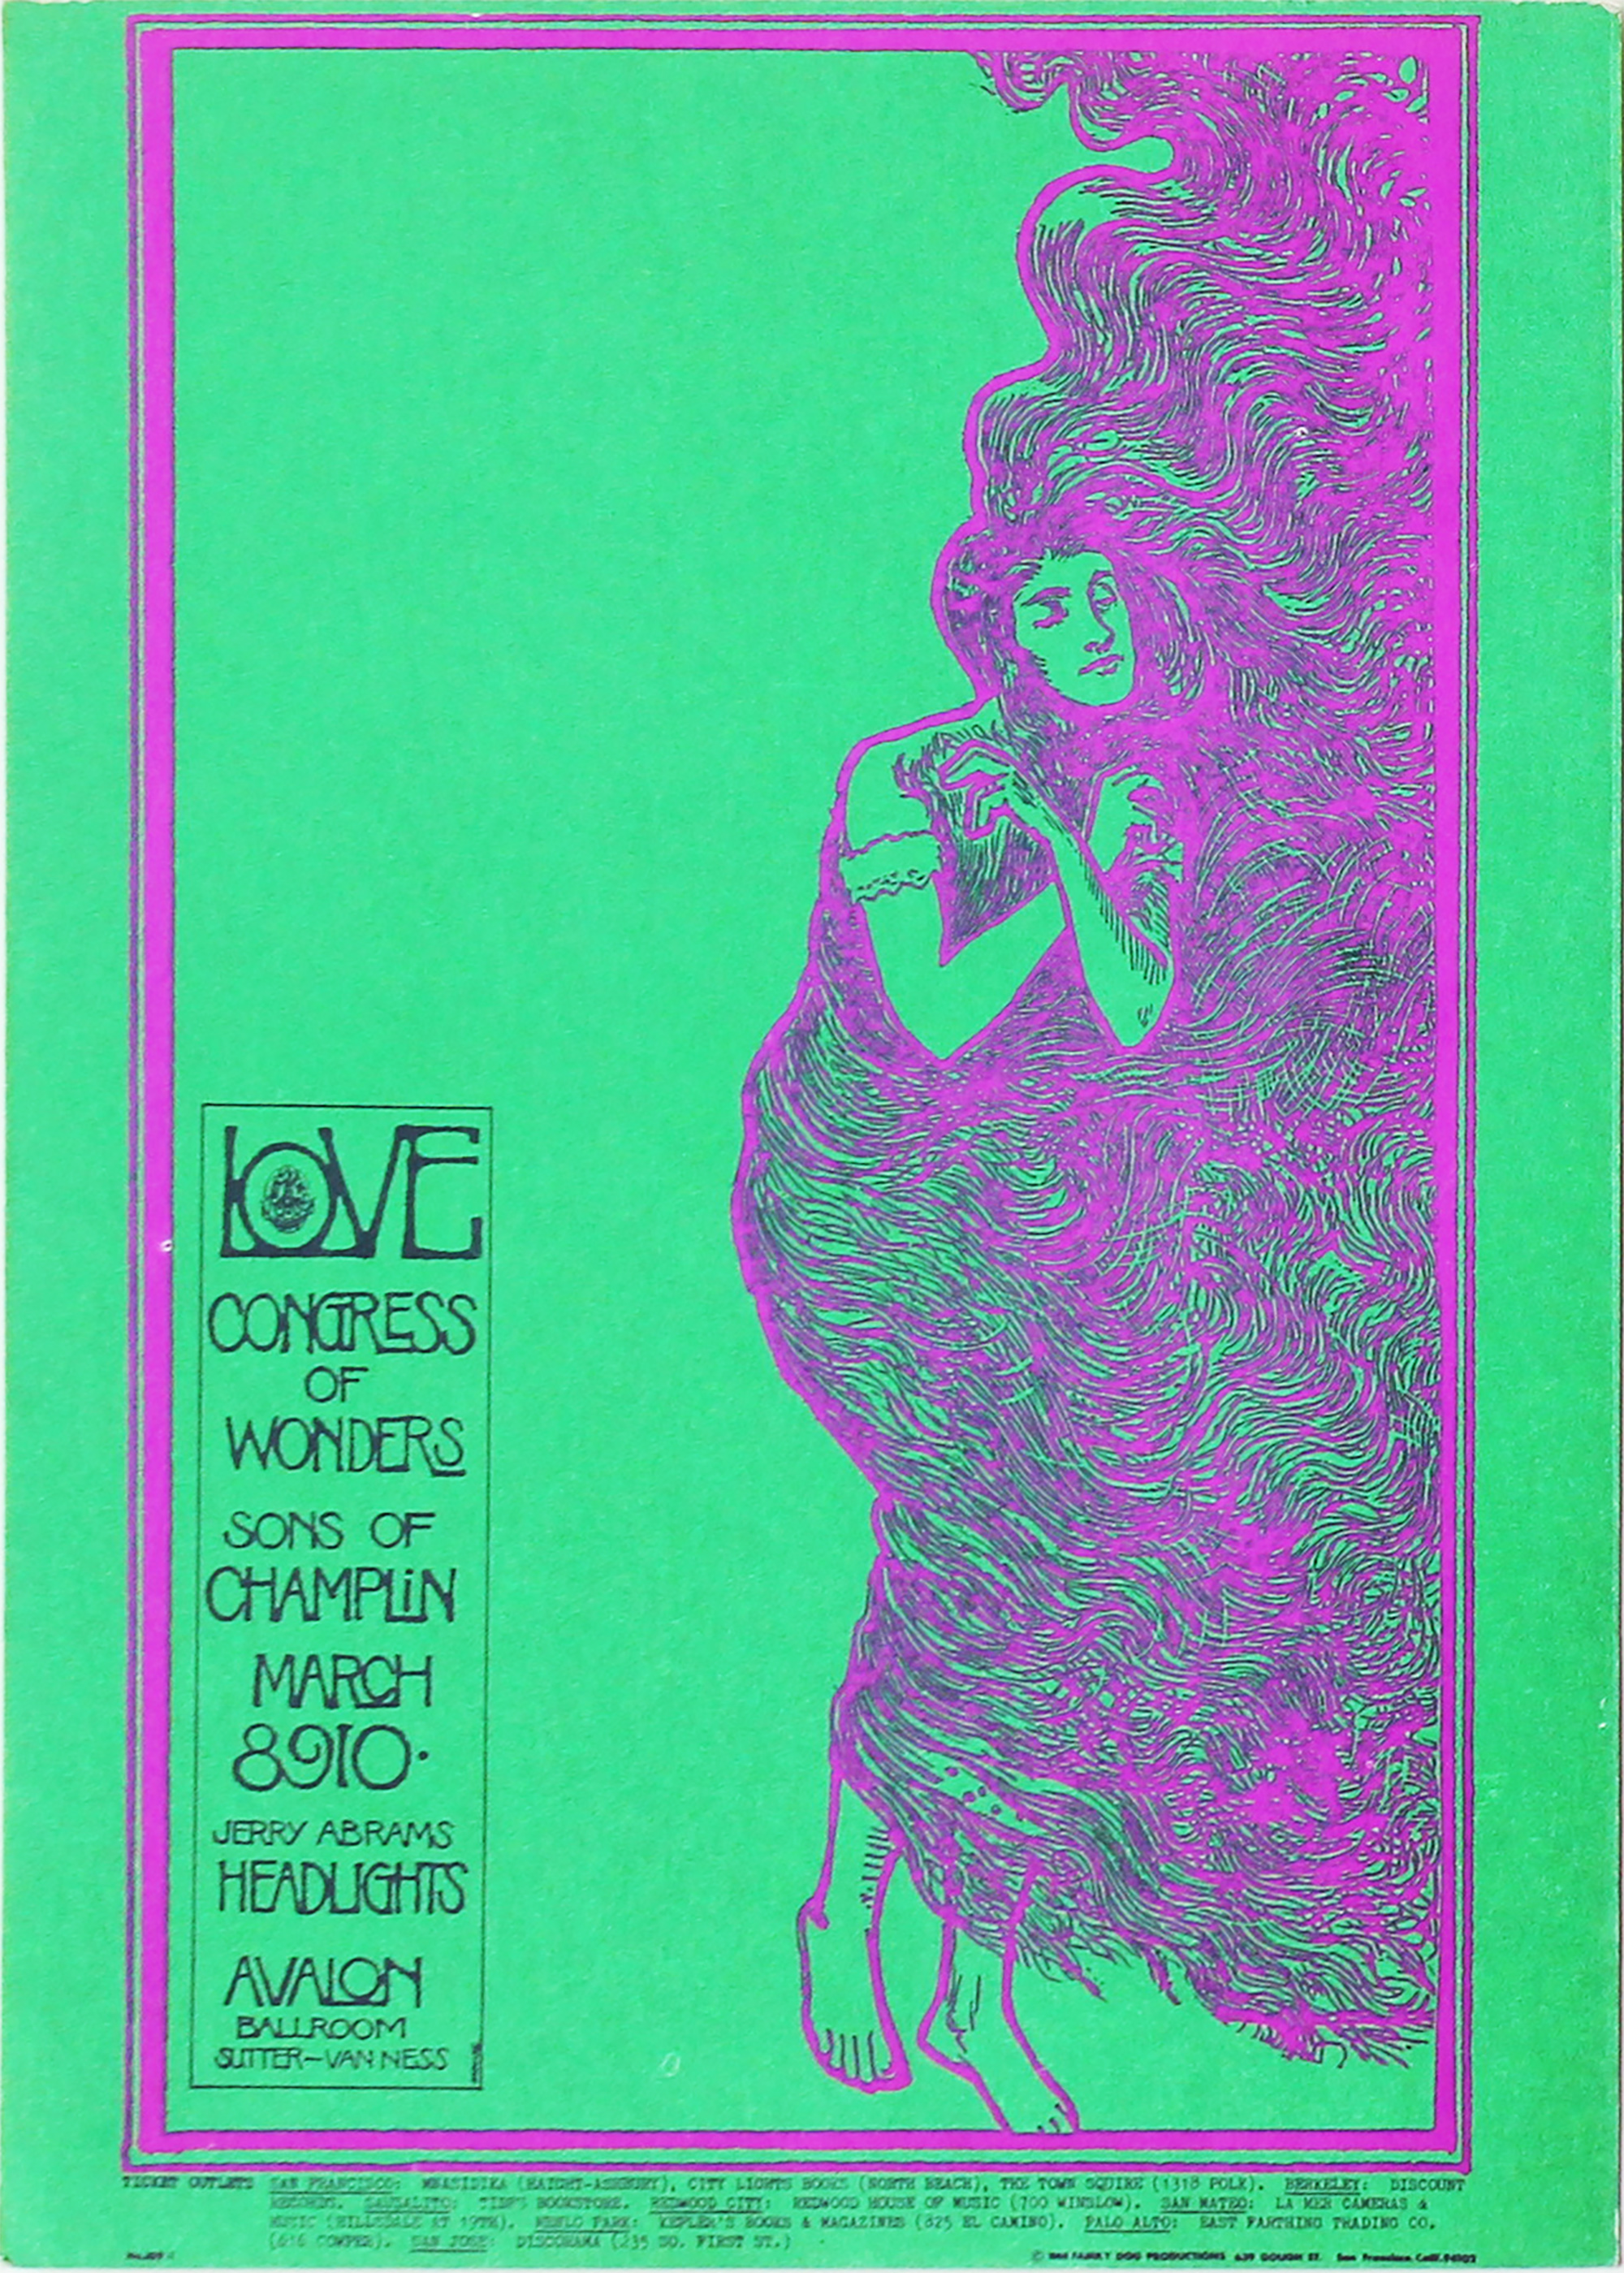 "Love Postcard from Avalon Ballroom on 08 Mar 68: 5"" x 7"""